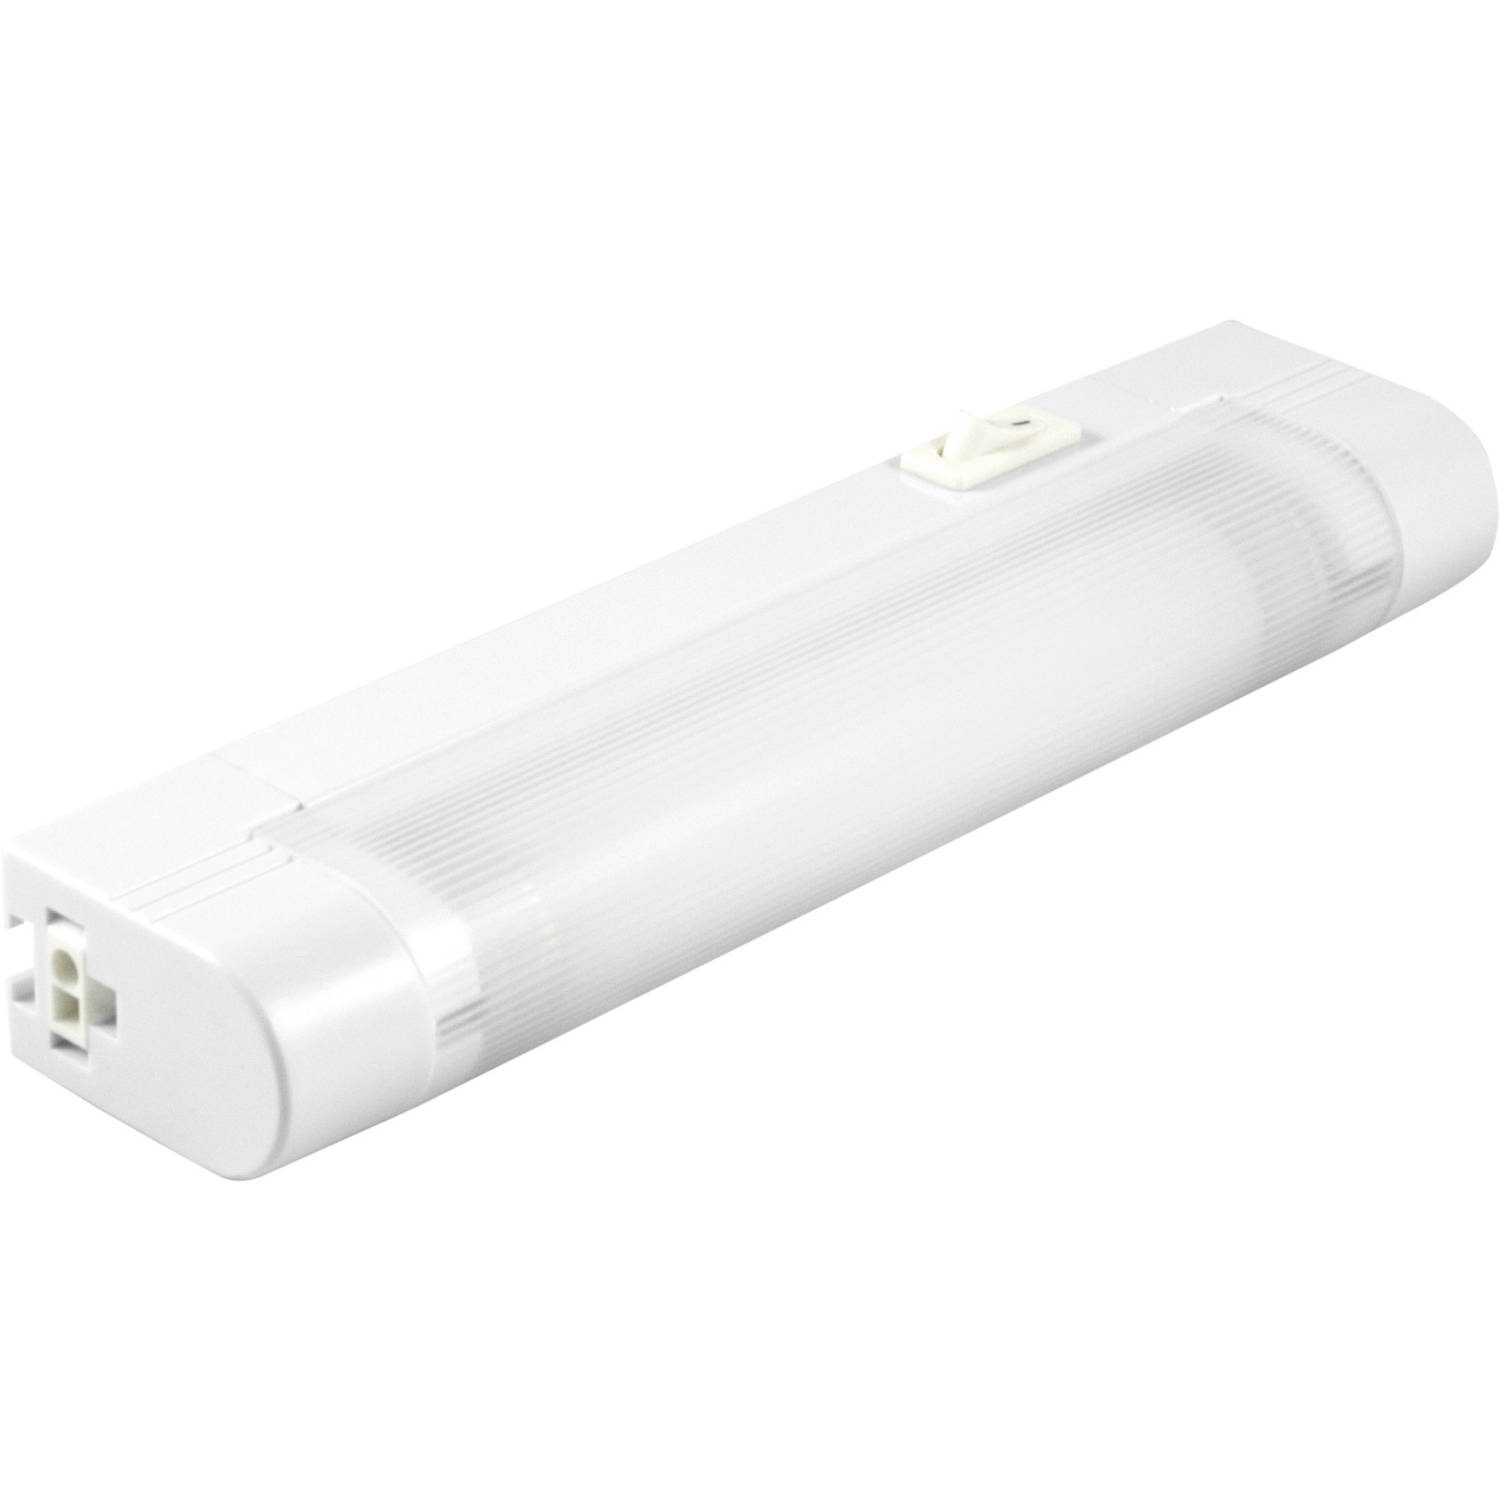 Ge slim line 8 inch fluorescent light fixture plug in linkable ge slim line 8 inch fluorescent light fixture plug in linkable 10167 walmart aloadofball Images